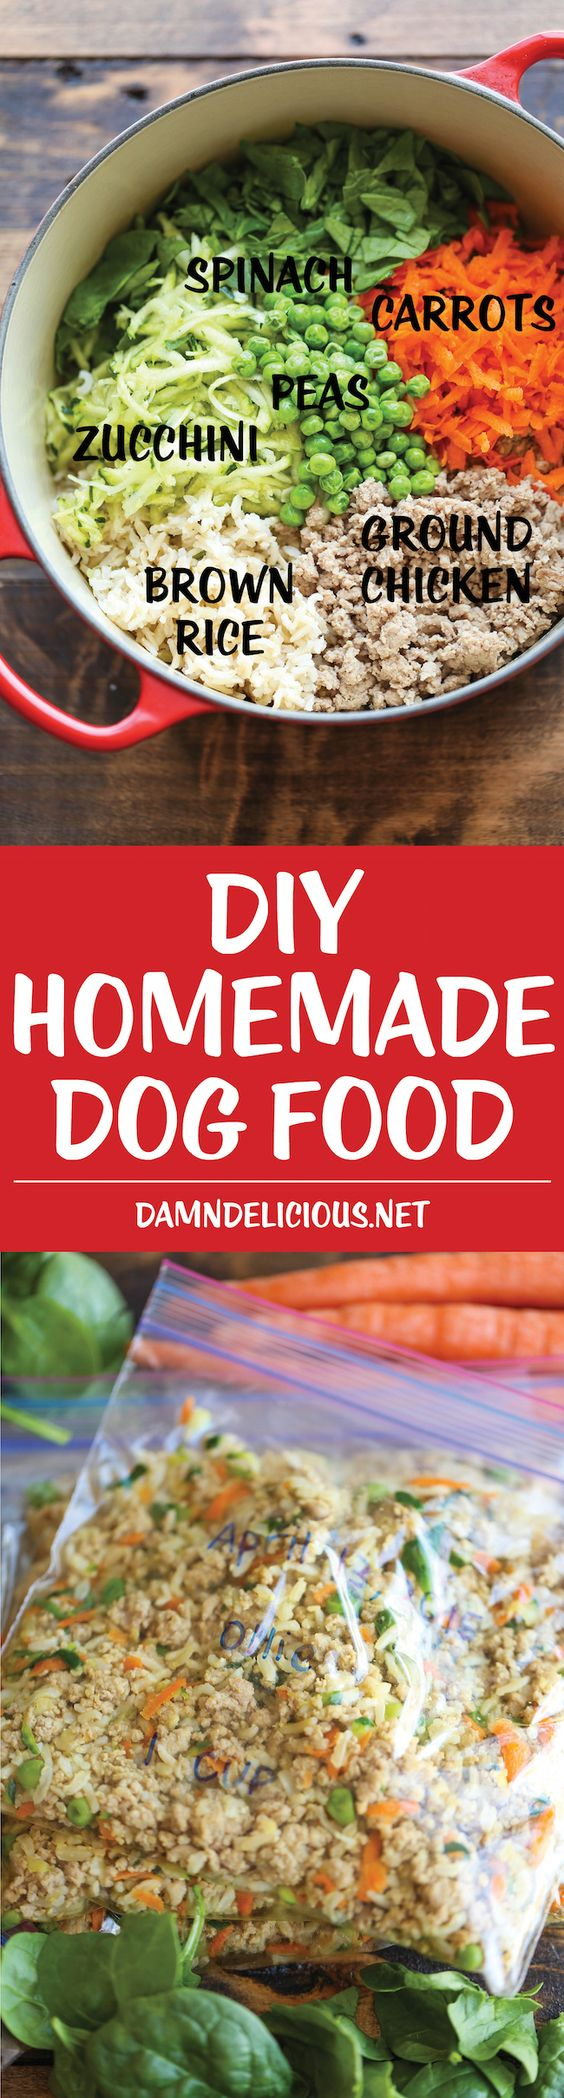 Affordable Dog Food That Is Healthy